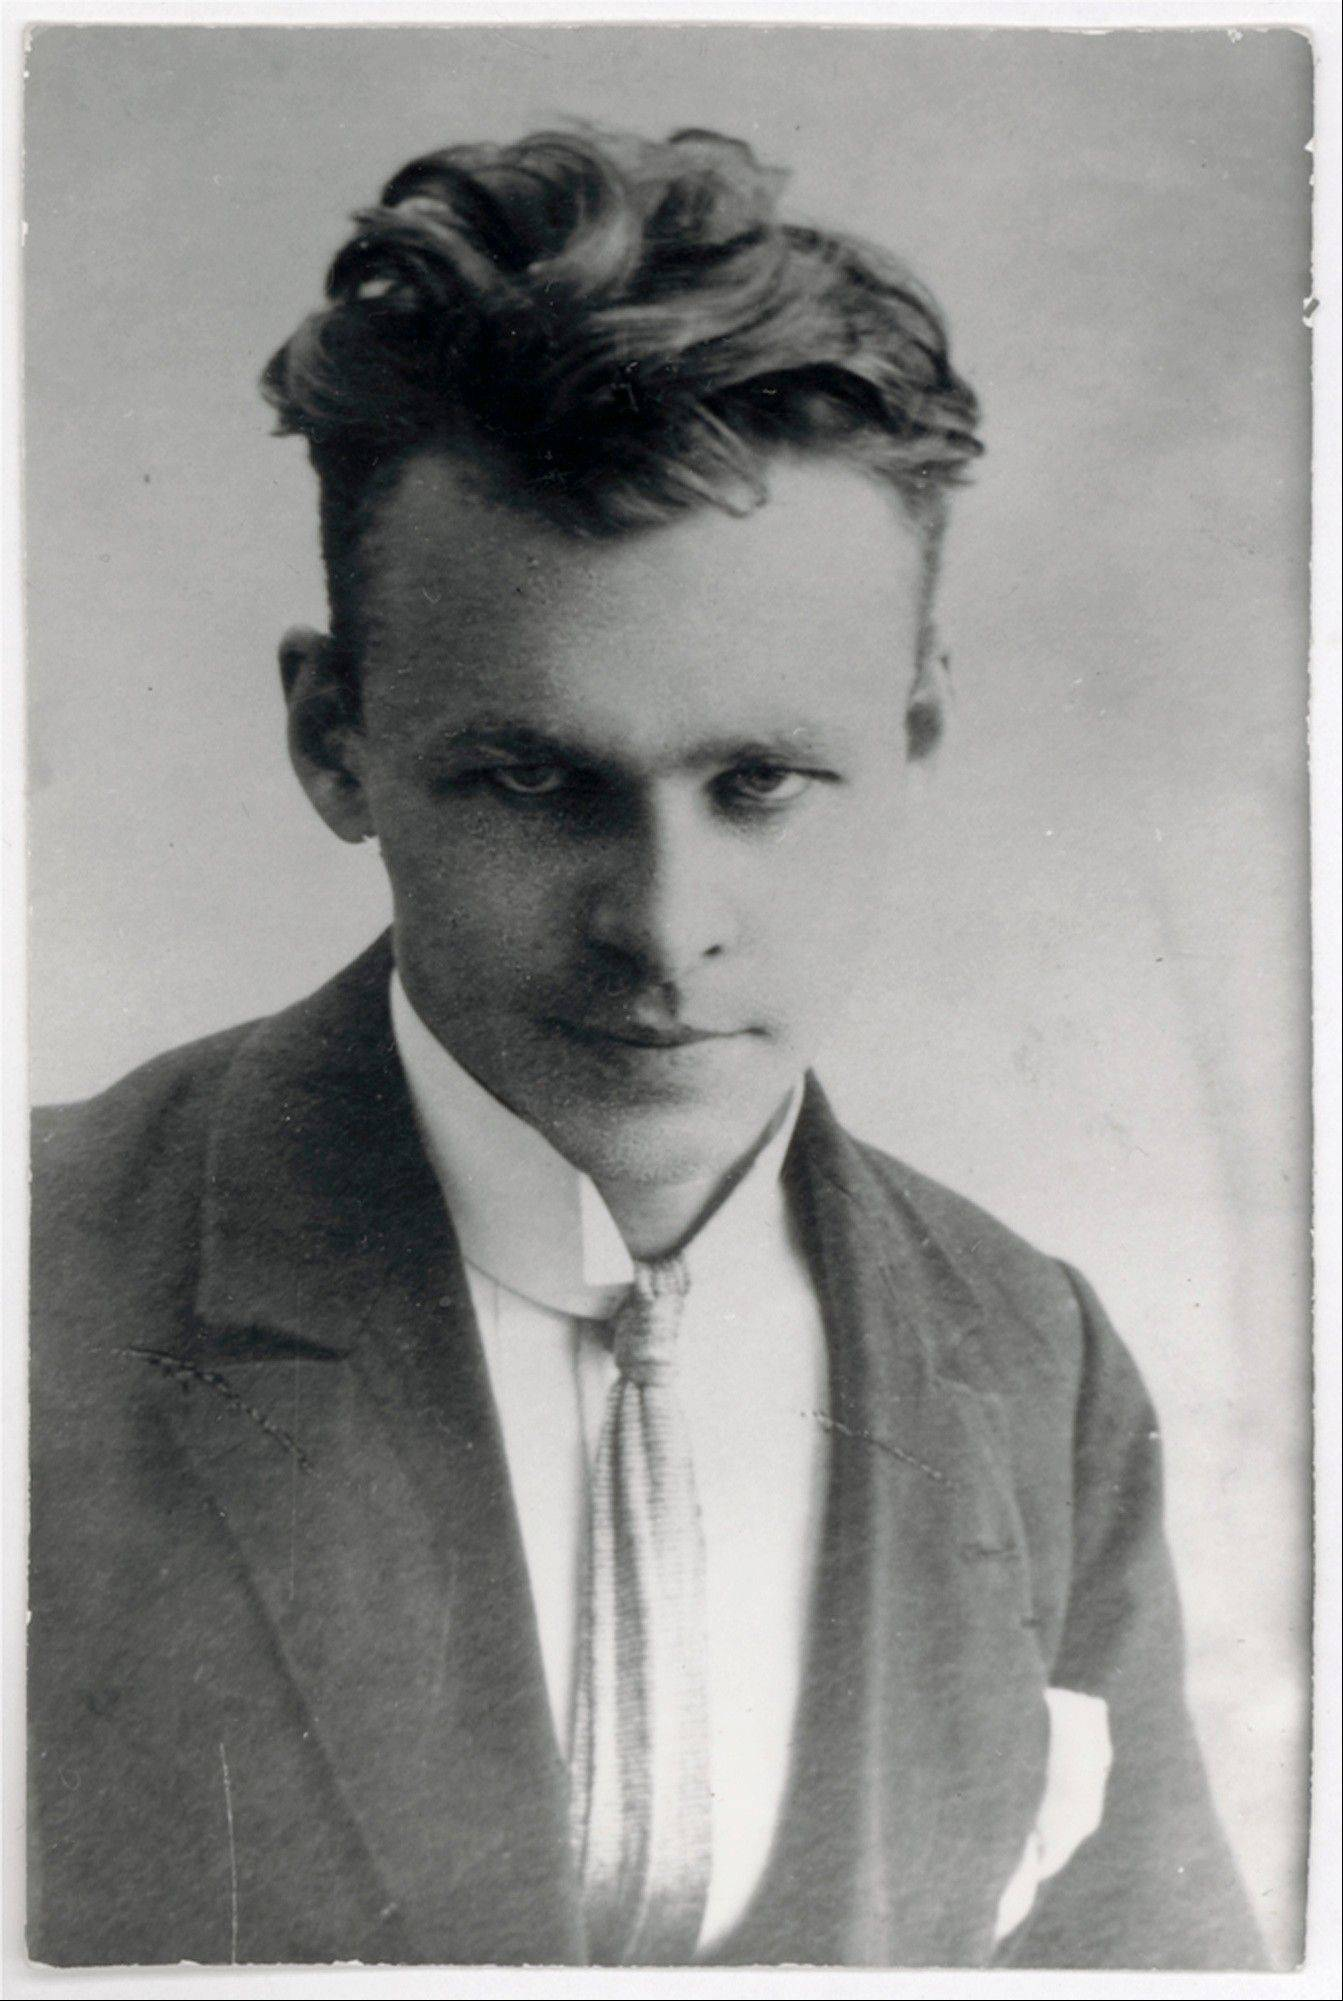 This photo taken in 1920s and provided by the Institute of National Remembrance shows Witold Pilecki. More than a hundred skeletons of Poles murdered by the communist regime after World War II have been excavated from a secret mass grave on the edge of Warsaw's Powazki Military Cemetery during recent digging works. Historians hope to identify among them the remains of Witold Pilecki who volunteered to be an Auschwitz inmate to secretly gather evidence of atrocities there.